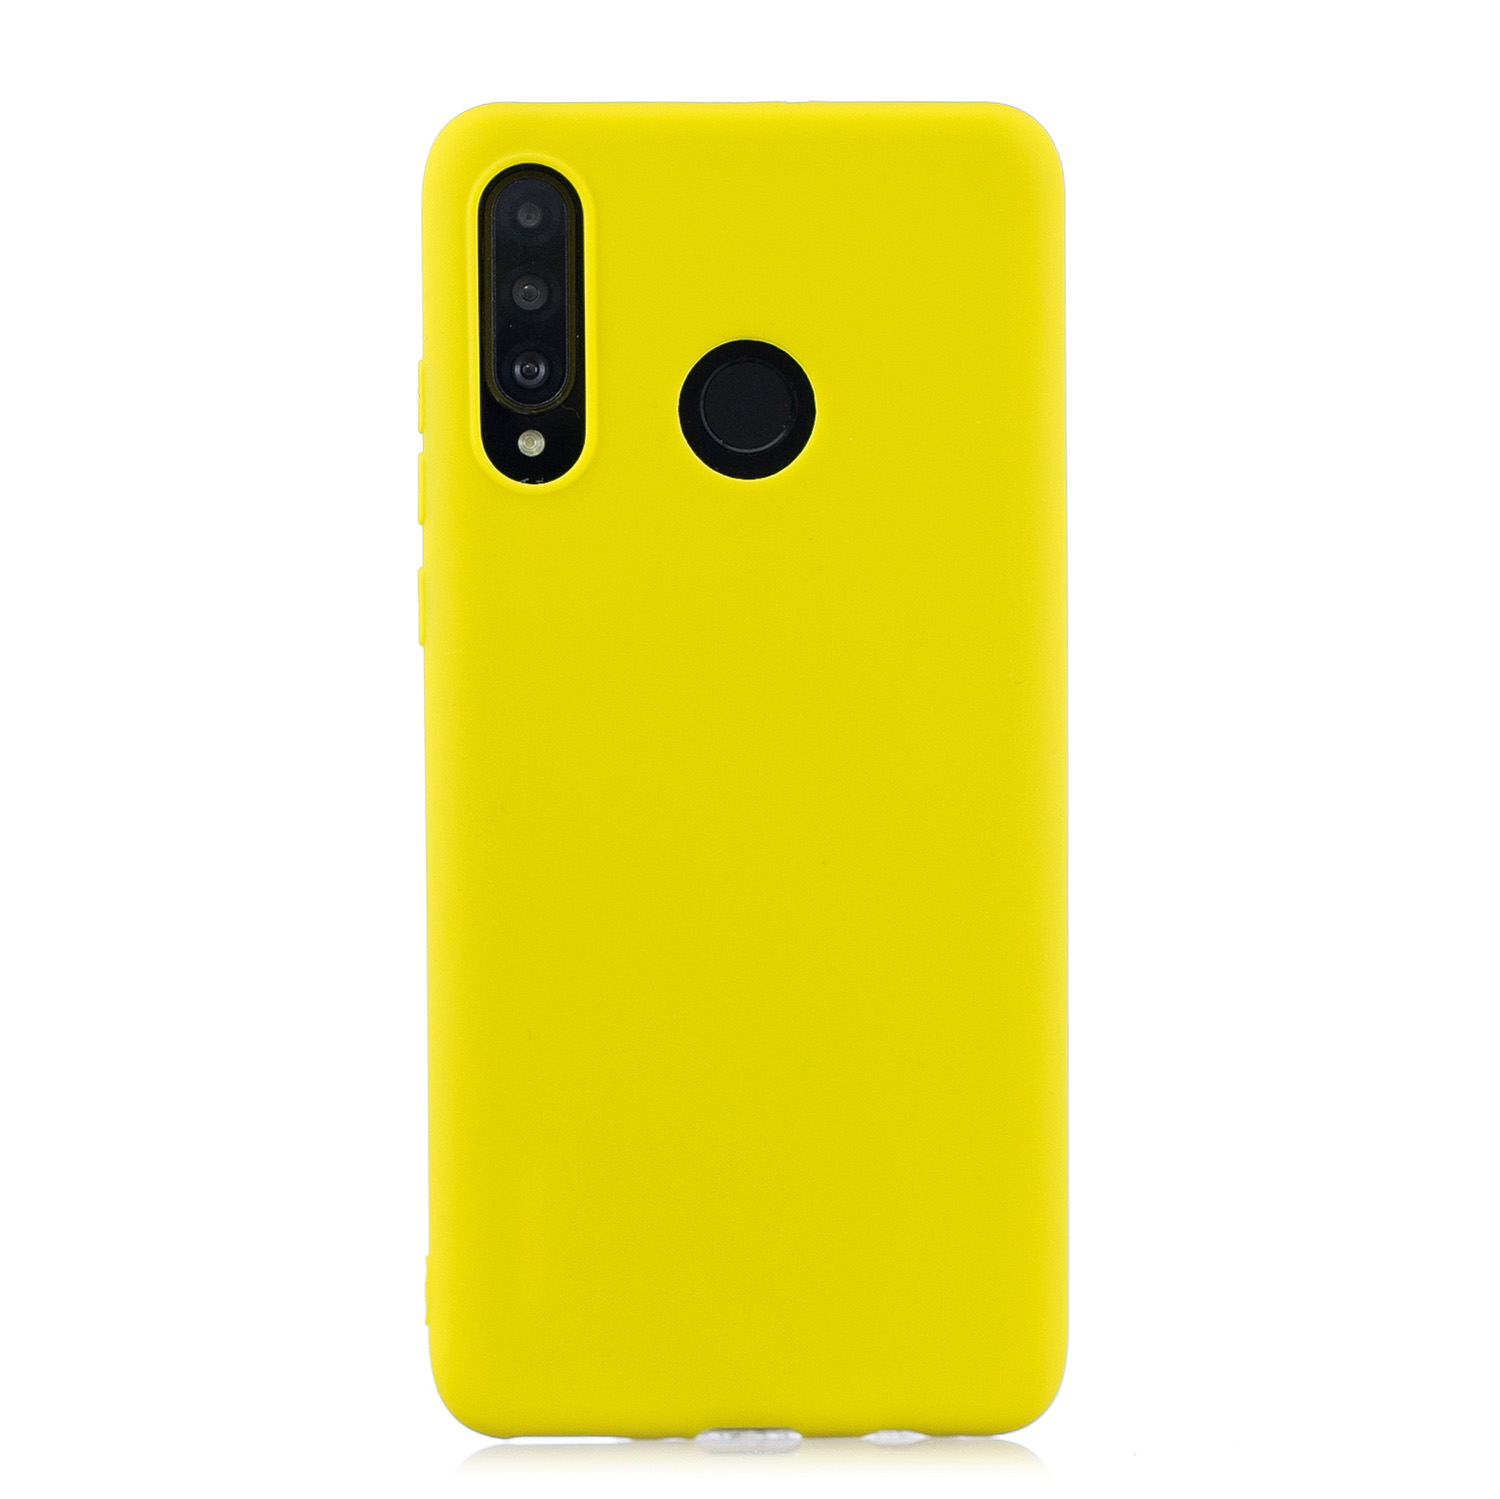 For HUAWEI P30 LITE/NOVA 4E Lovely Candy Color Matte TPU Anti-scratch Non-slip Protective Cover Back Case yellow